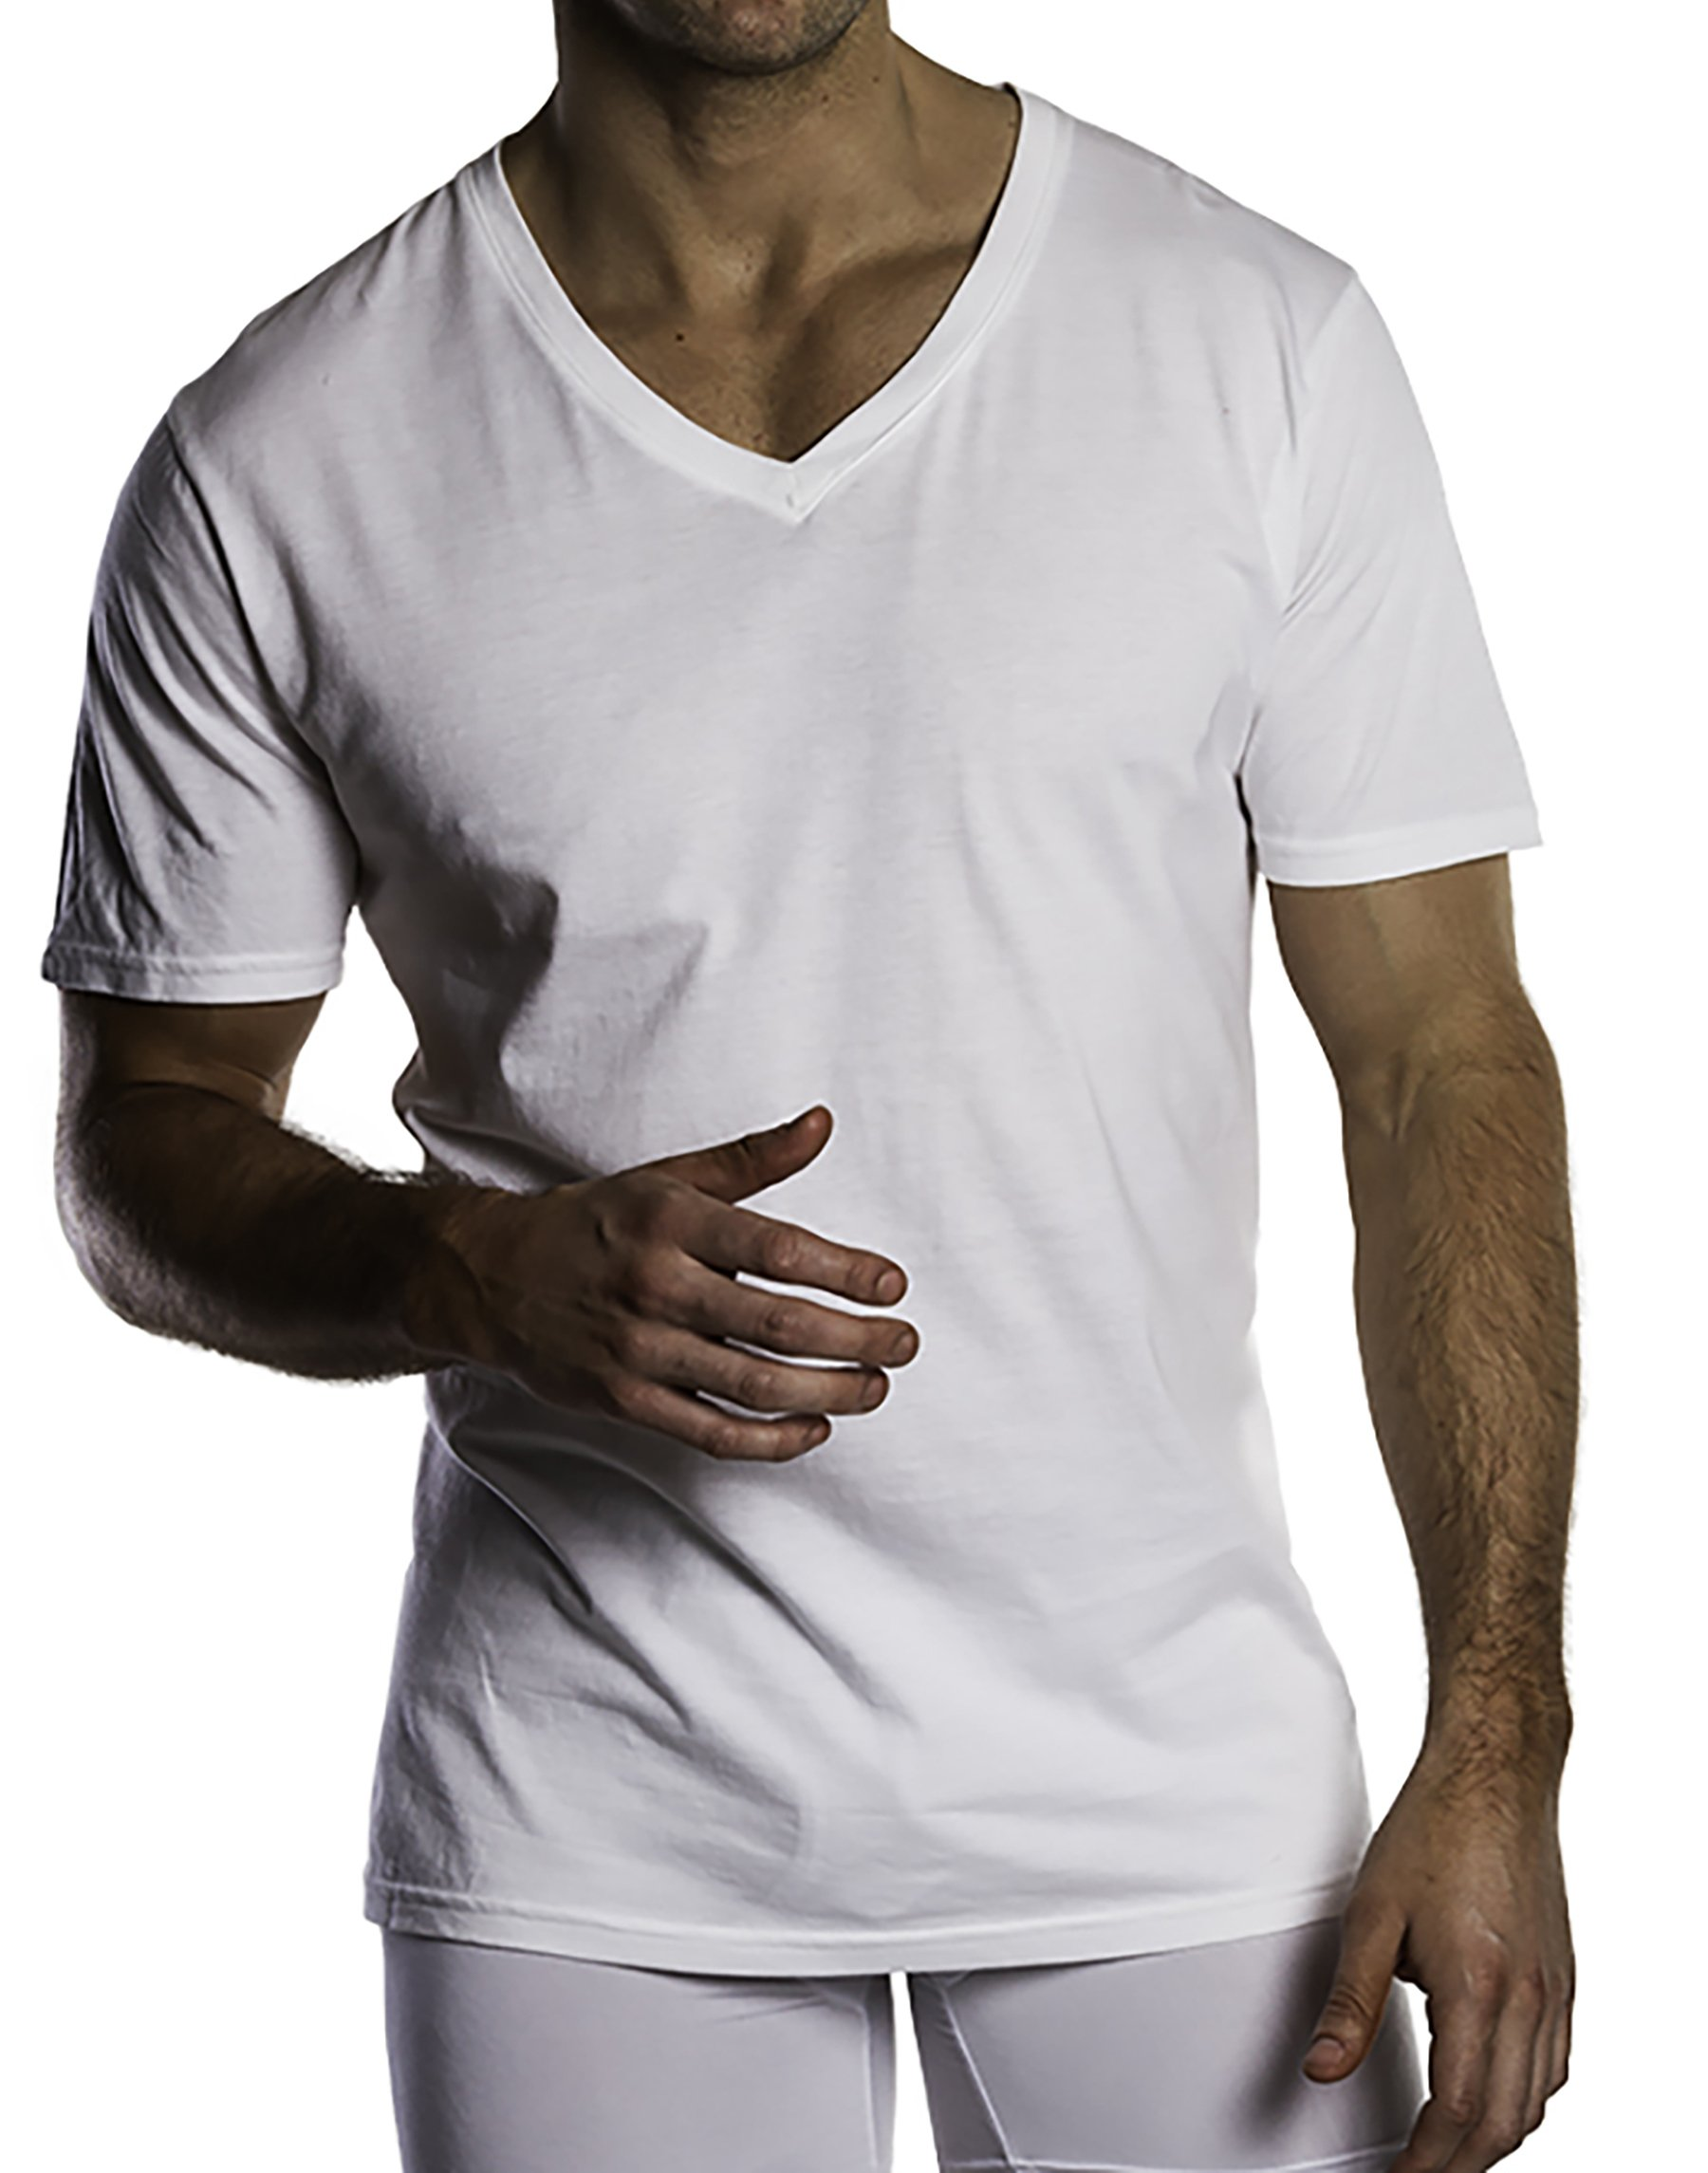 Michael Adams 5 Pack Men's Undershirt Tees, Breathable, Stretch Fabric, White